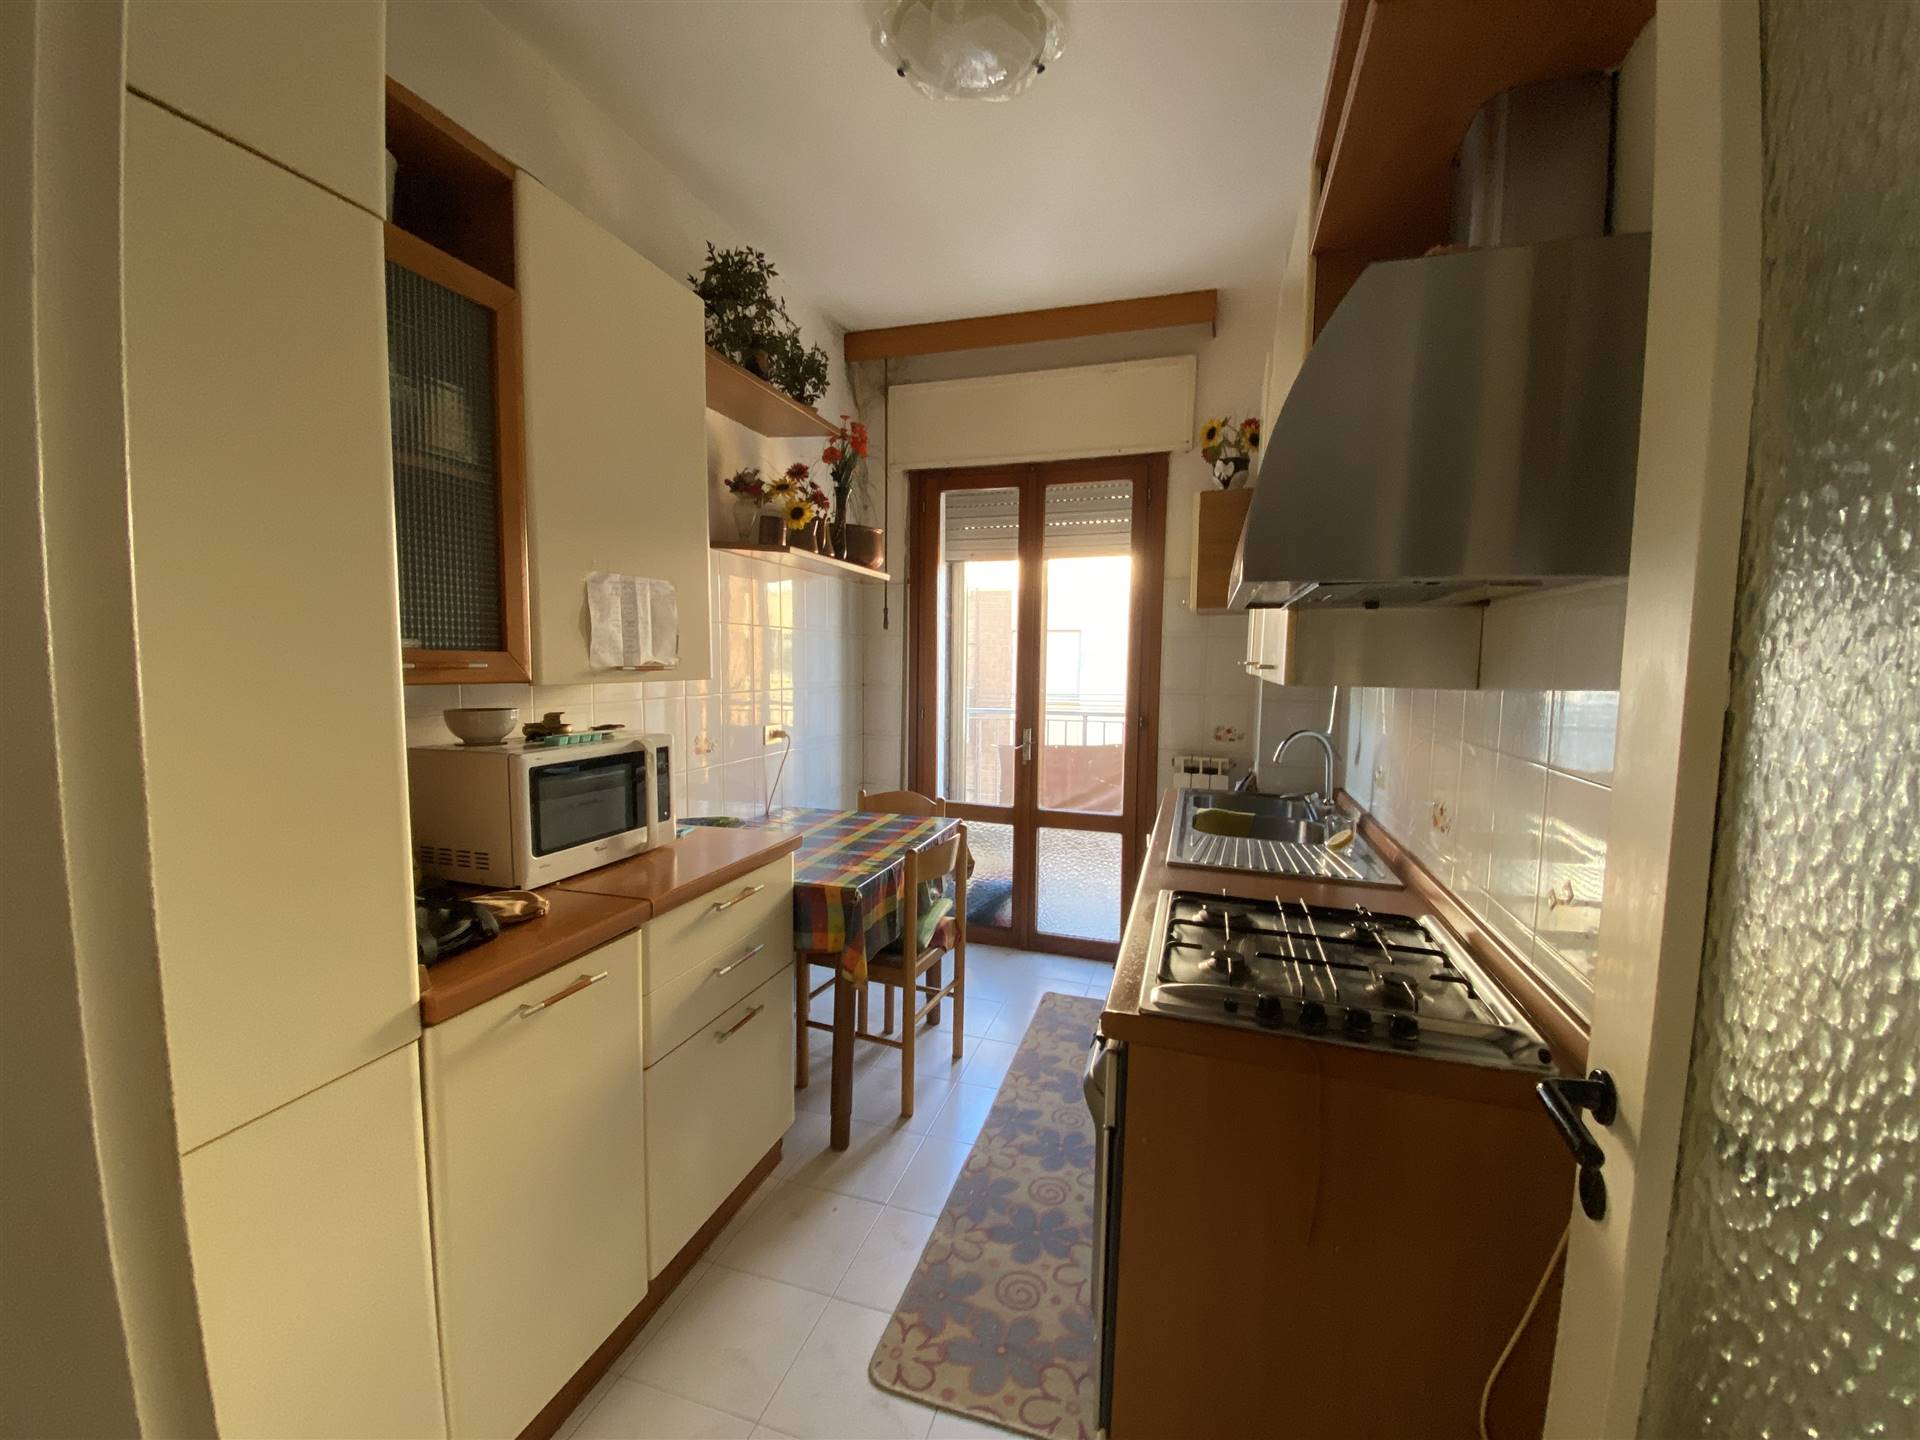 BORGO SAN GIOVANNI, CHIOGGIA, Apartment for sale of 75 Sq. mt., Habitable, Heating Individual heating system, Energetic class: G, placed at 5°,